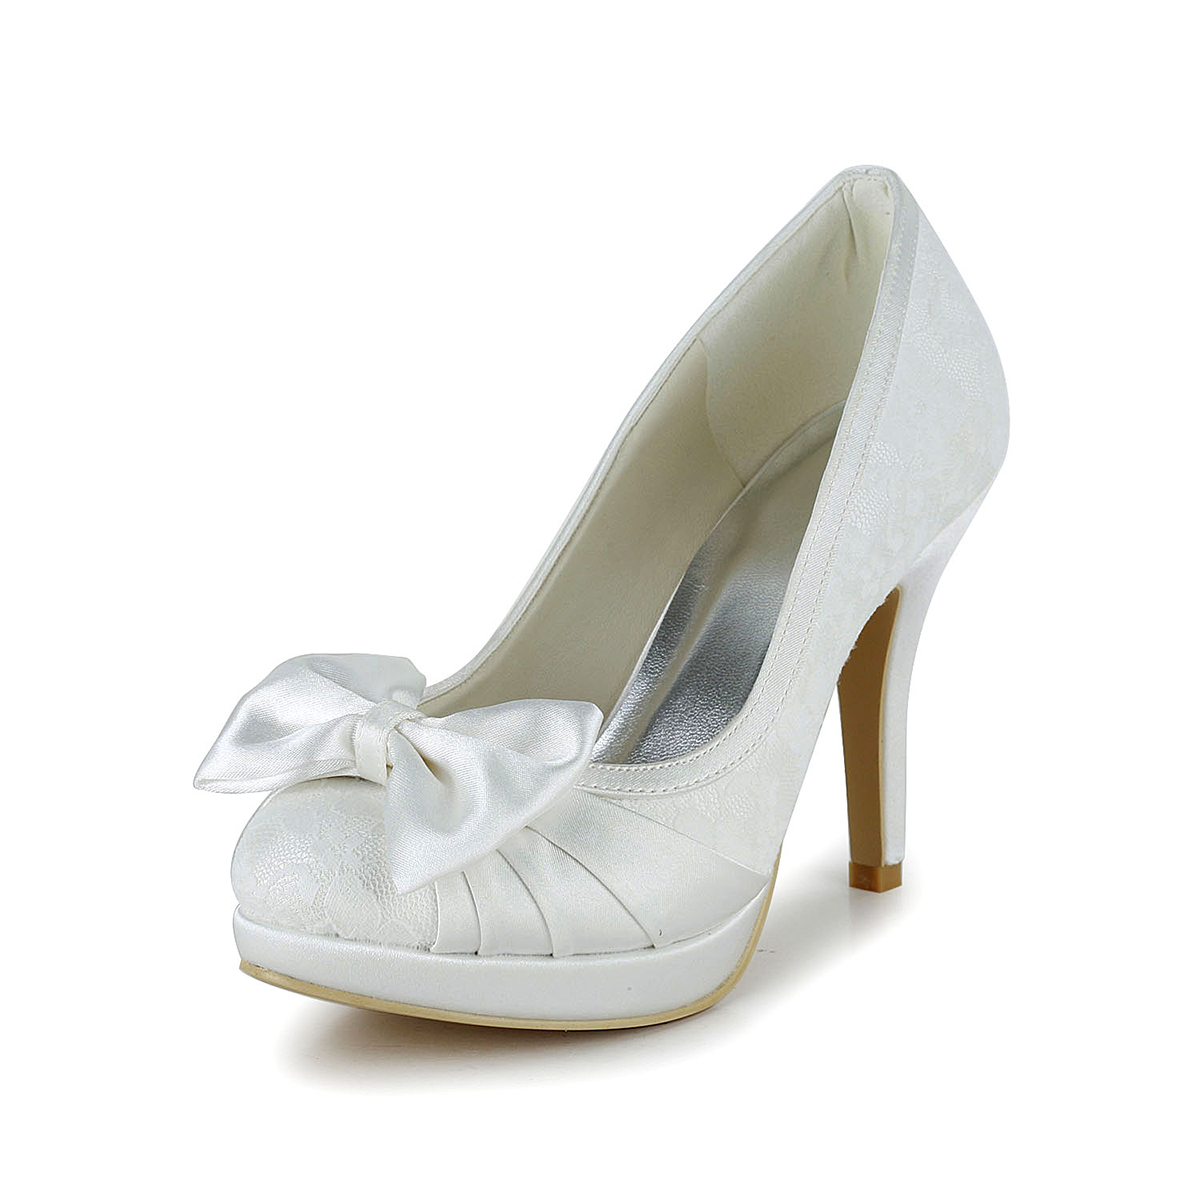 8b5e905f2f8 Close Toe Platform Stiletto Heel White Satin With Lace And Bowknot ...